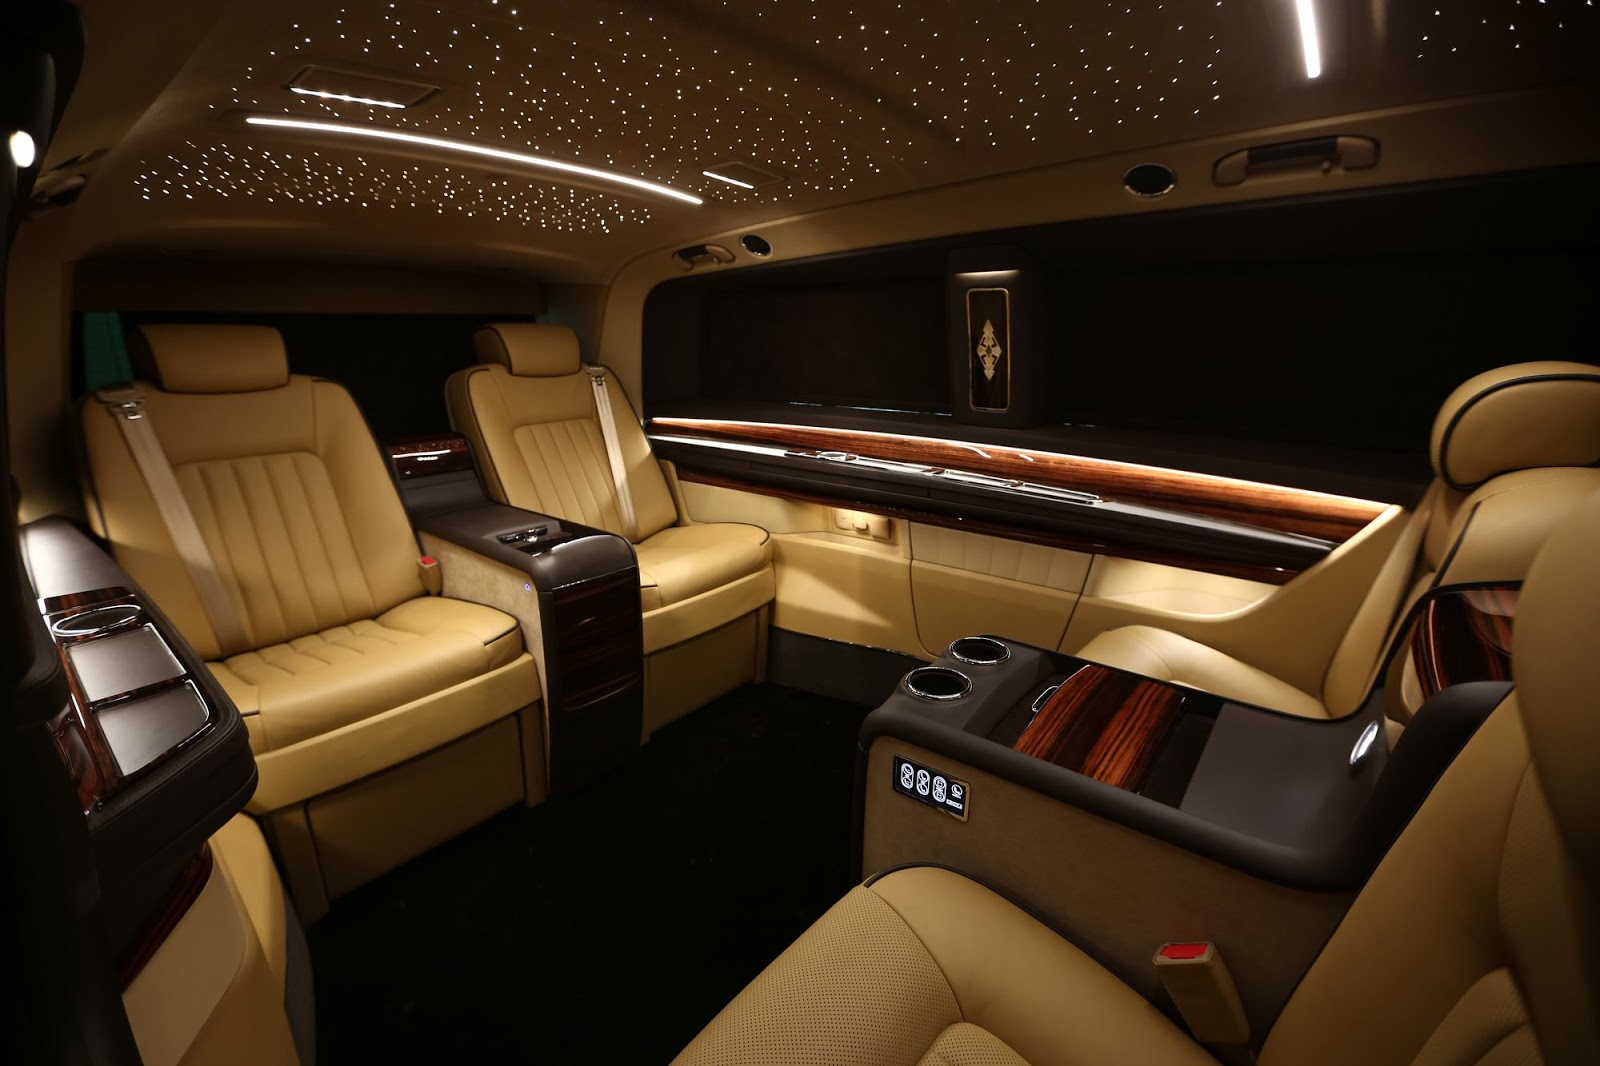 okcu 39 s mercedes v class elegance edition is like a private. Black Bedroom Furniture Sets. Home Design Ideas